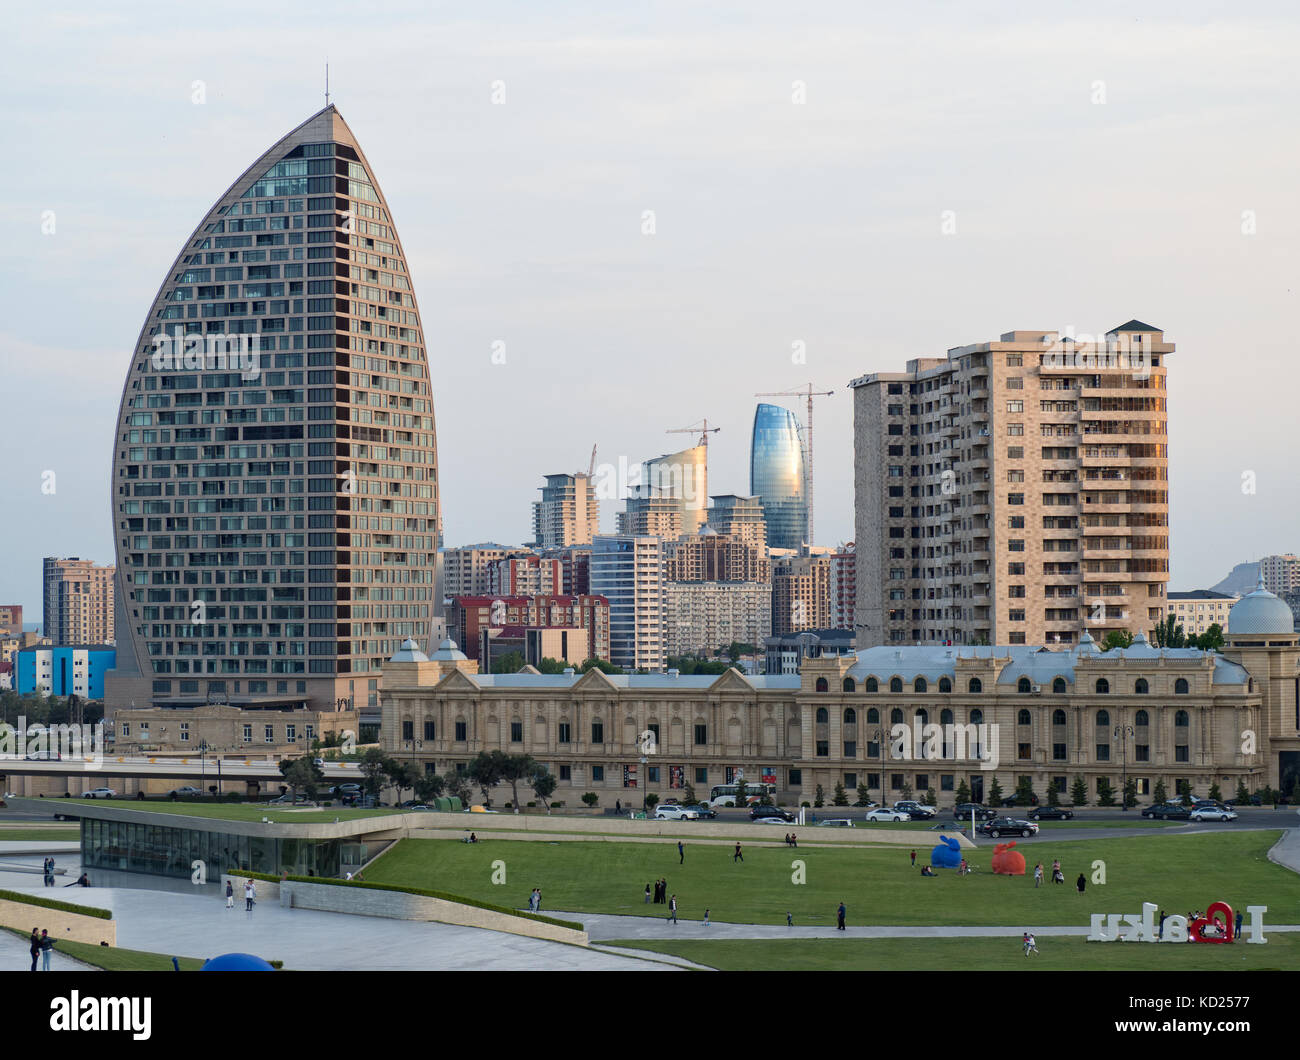 Modern architecture of Baku, Azerbaijan, in front of Heydar Aliyev centre Stock Photo